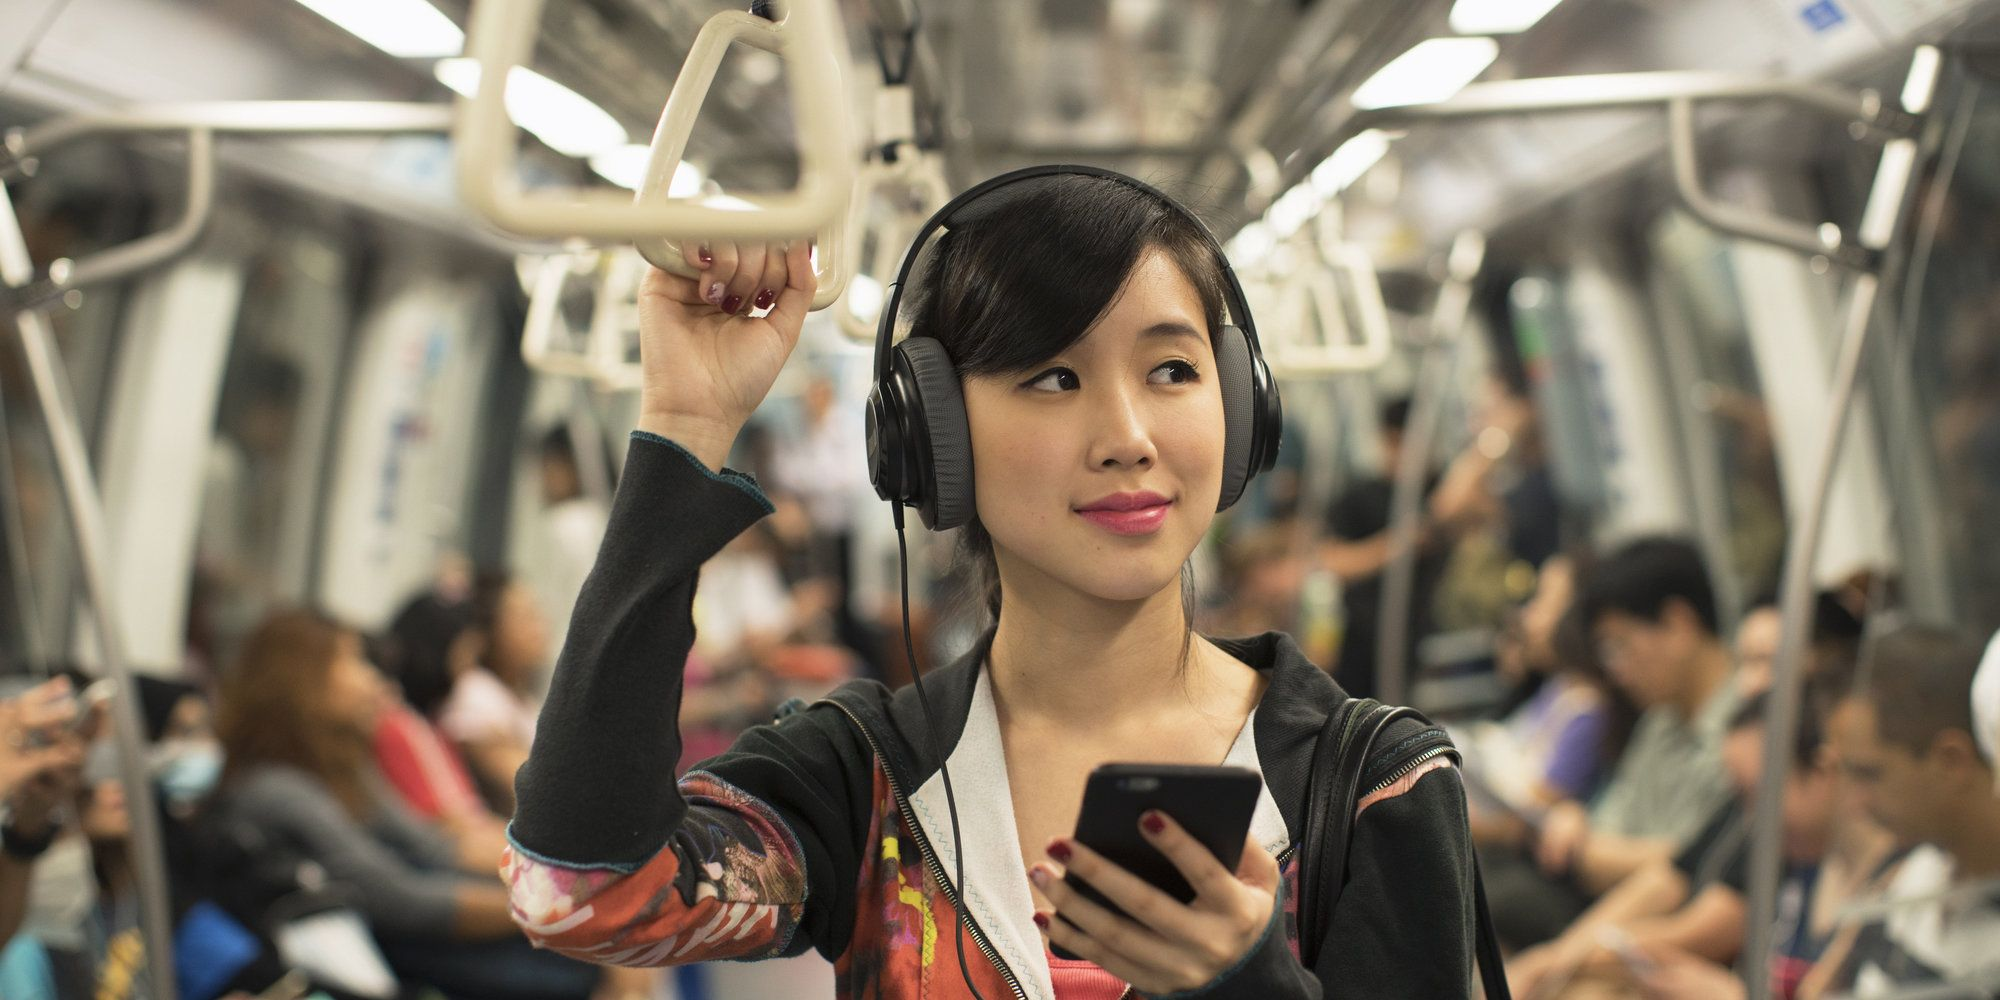 Wondering How To Talk To A Woman Who's Wearing Headphones? Don't.